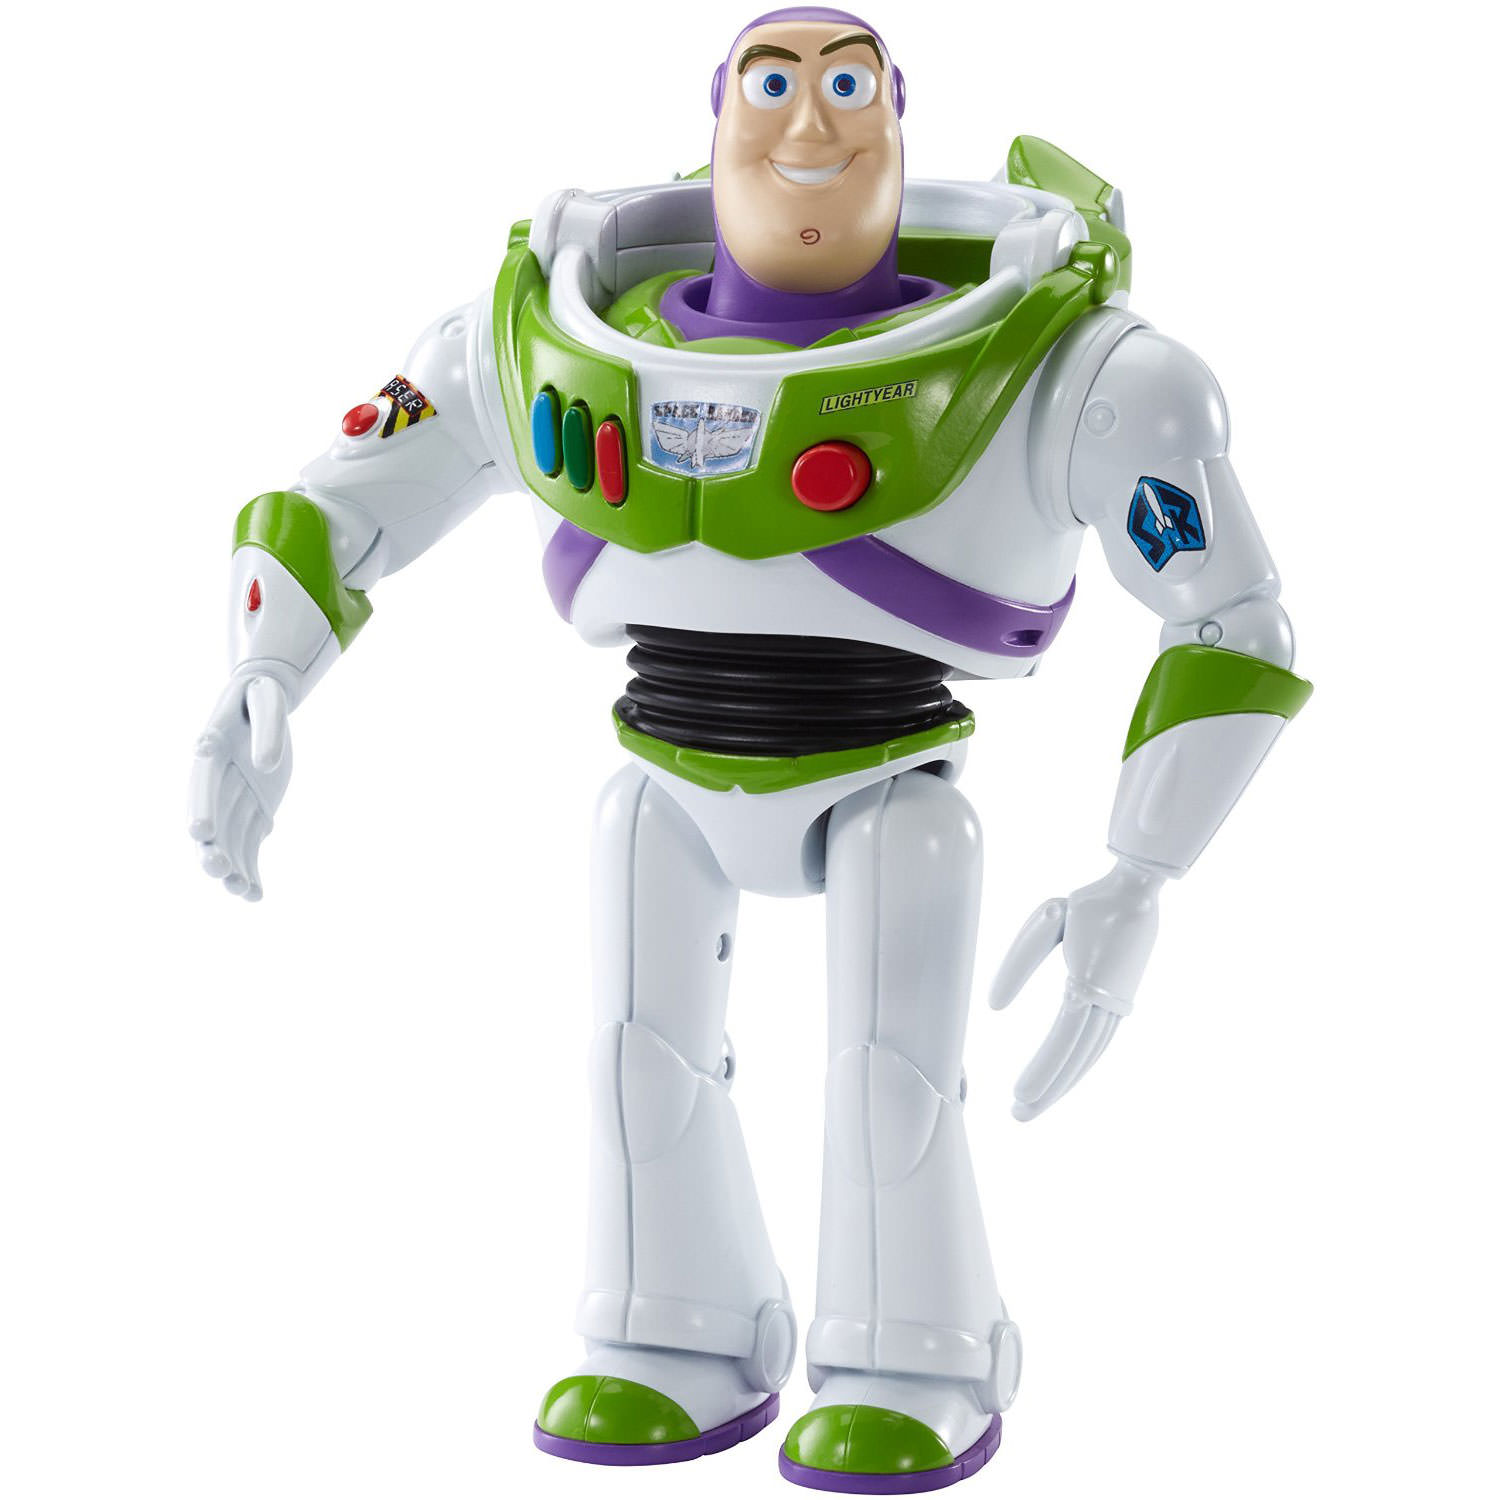 Toy Story Figures : Disney pixar toy story quot talking figure buzz lightyear